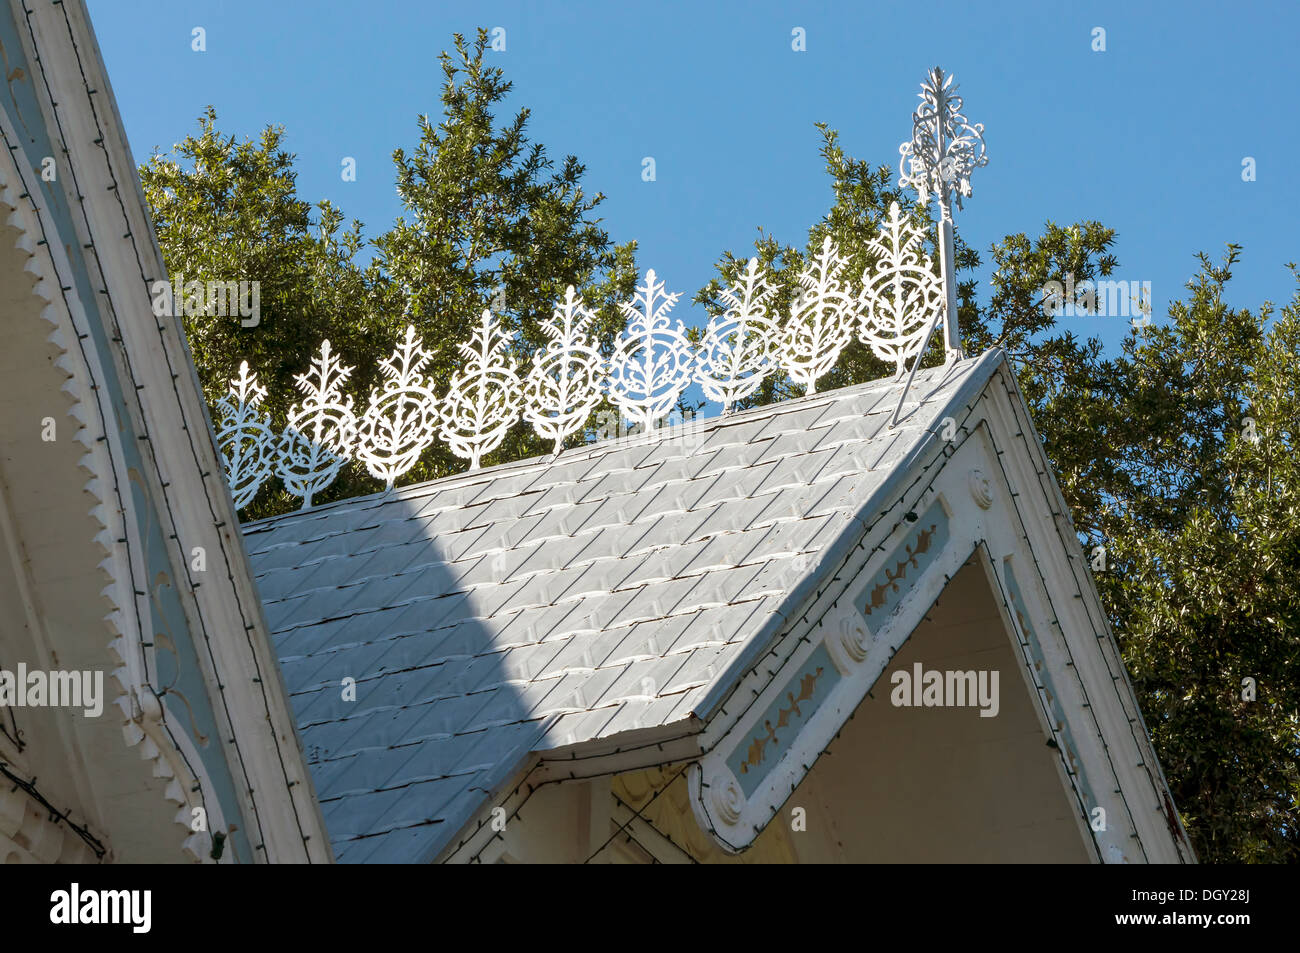 Vintage Style Sheet Metal Roofing Shingles And Gingerbread